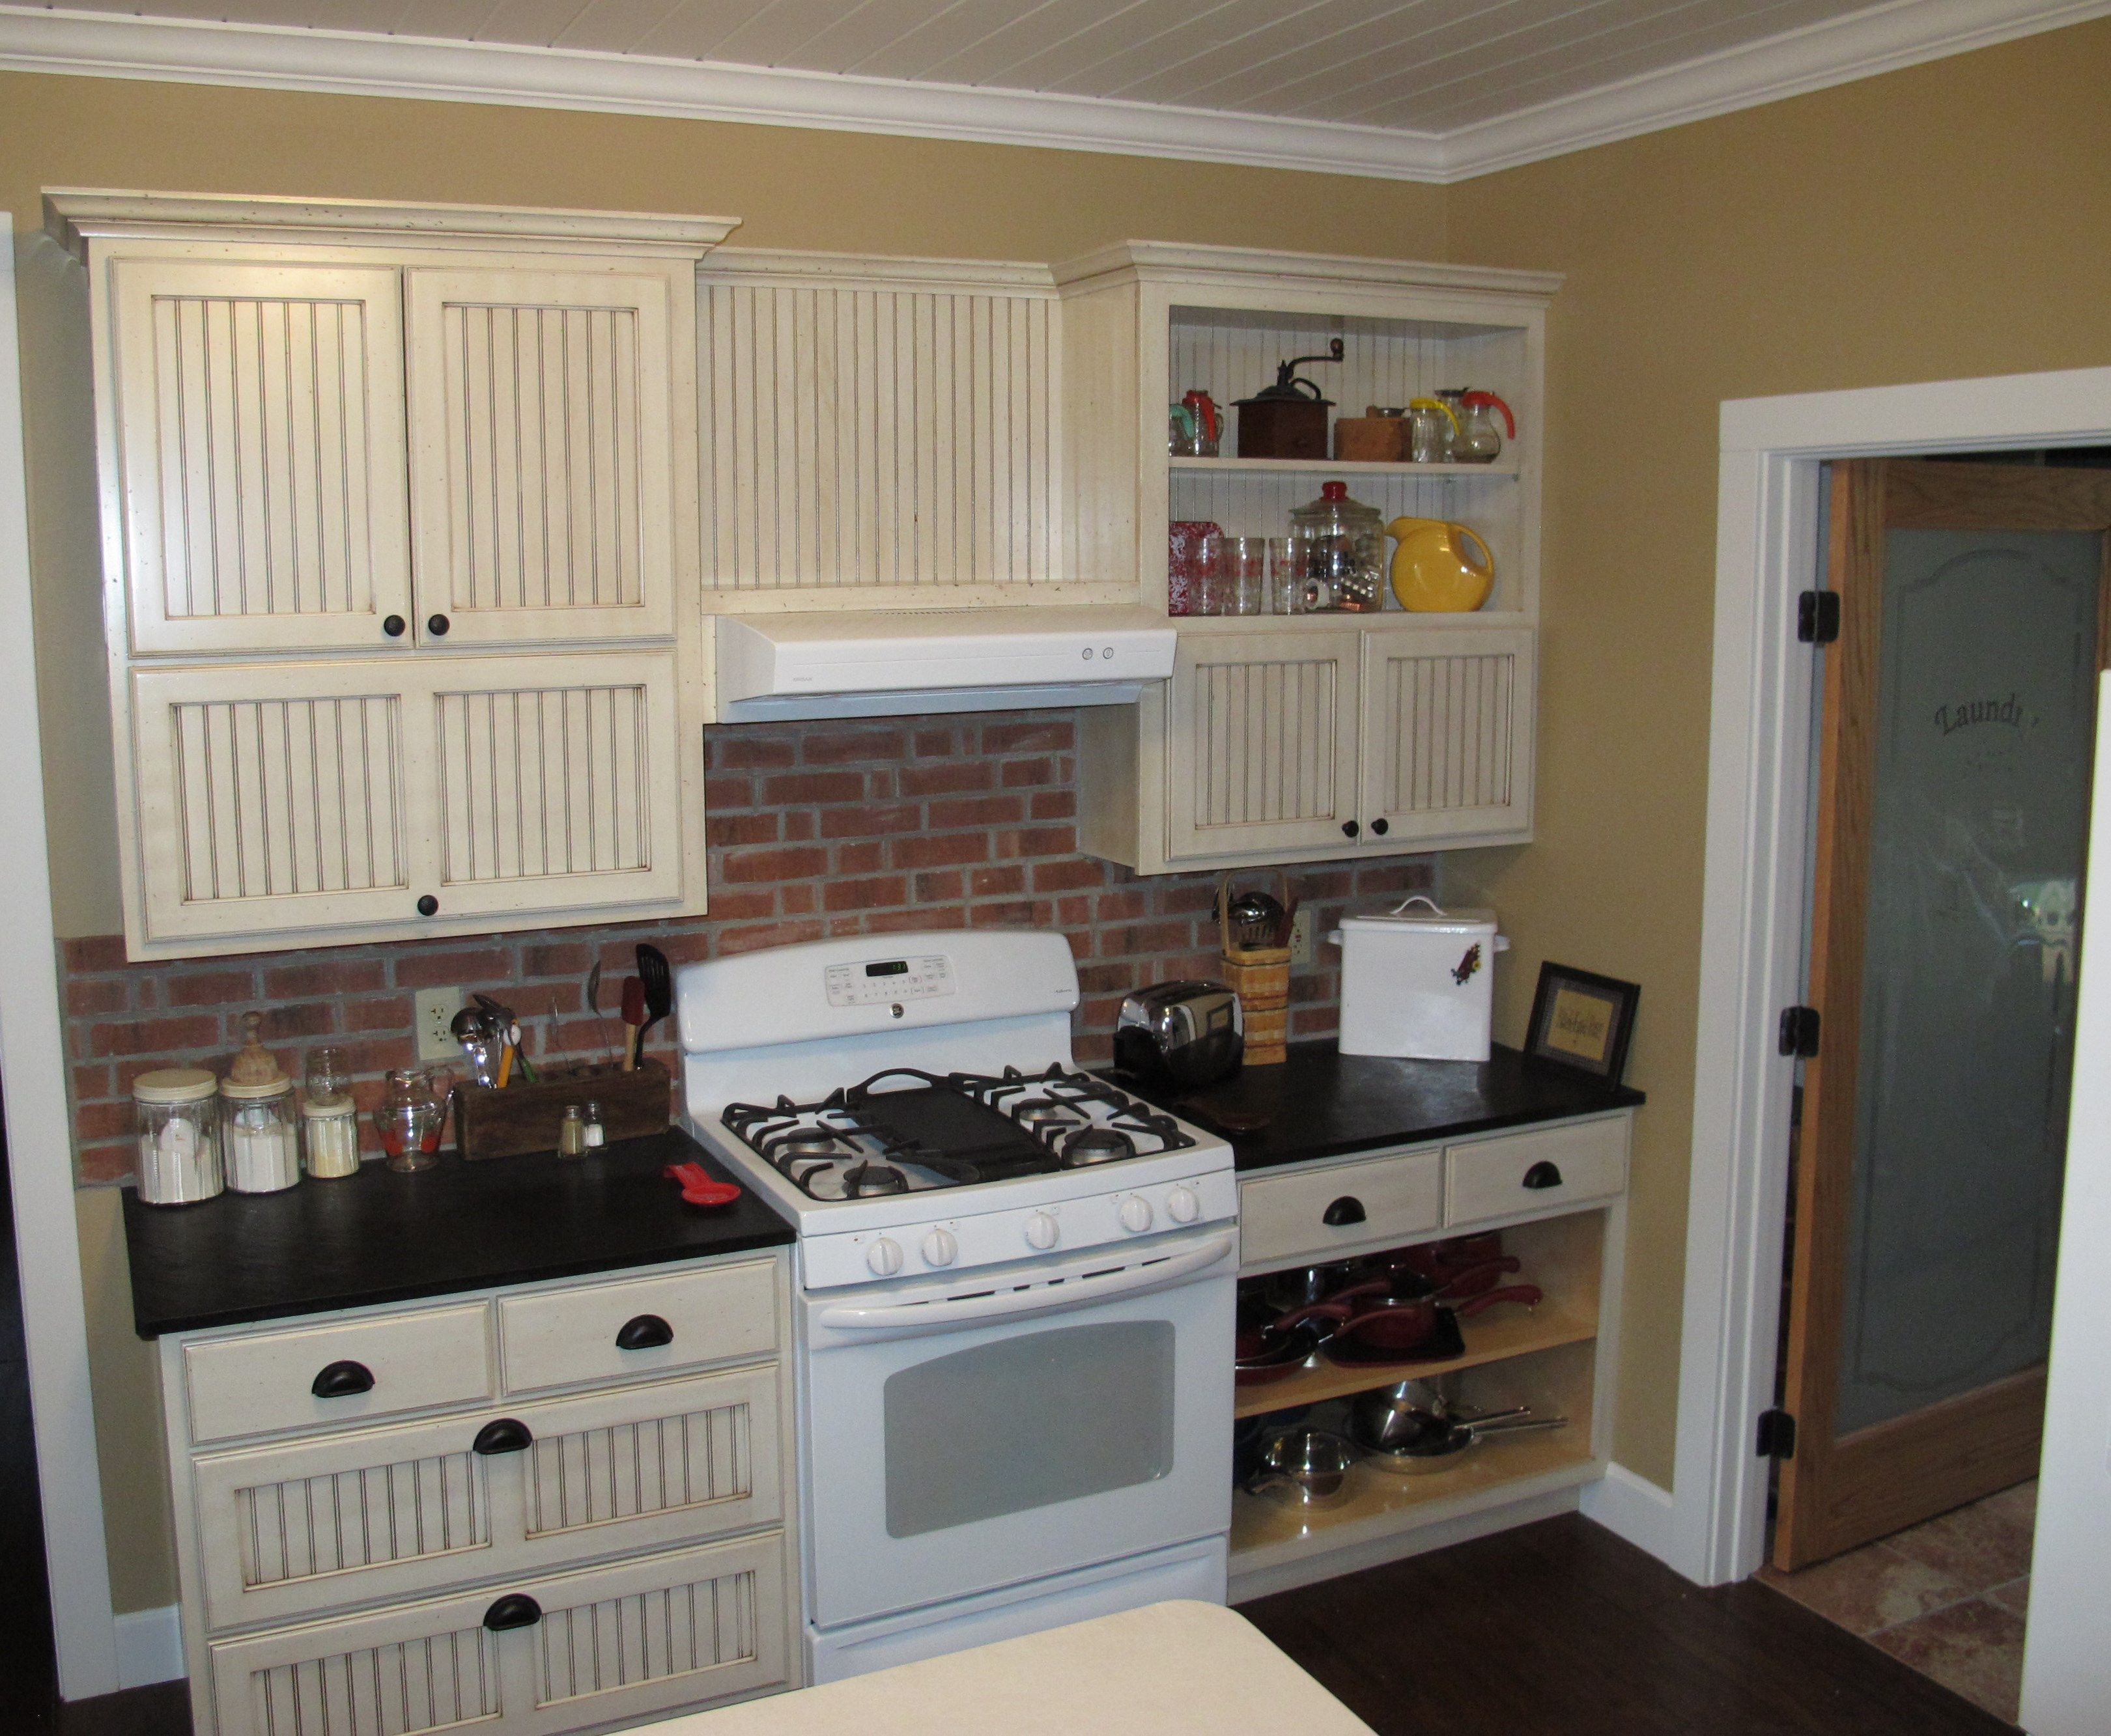 Stove Wall Includes Open Shelving In Upper And Lower Cabinets One Lift Door Open Space Above Vent Hood A Rustic Country Kitchens Low Cabinet Country Kitchen